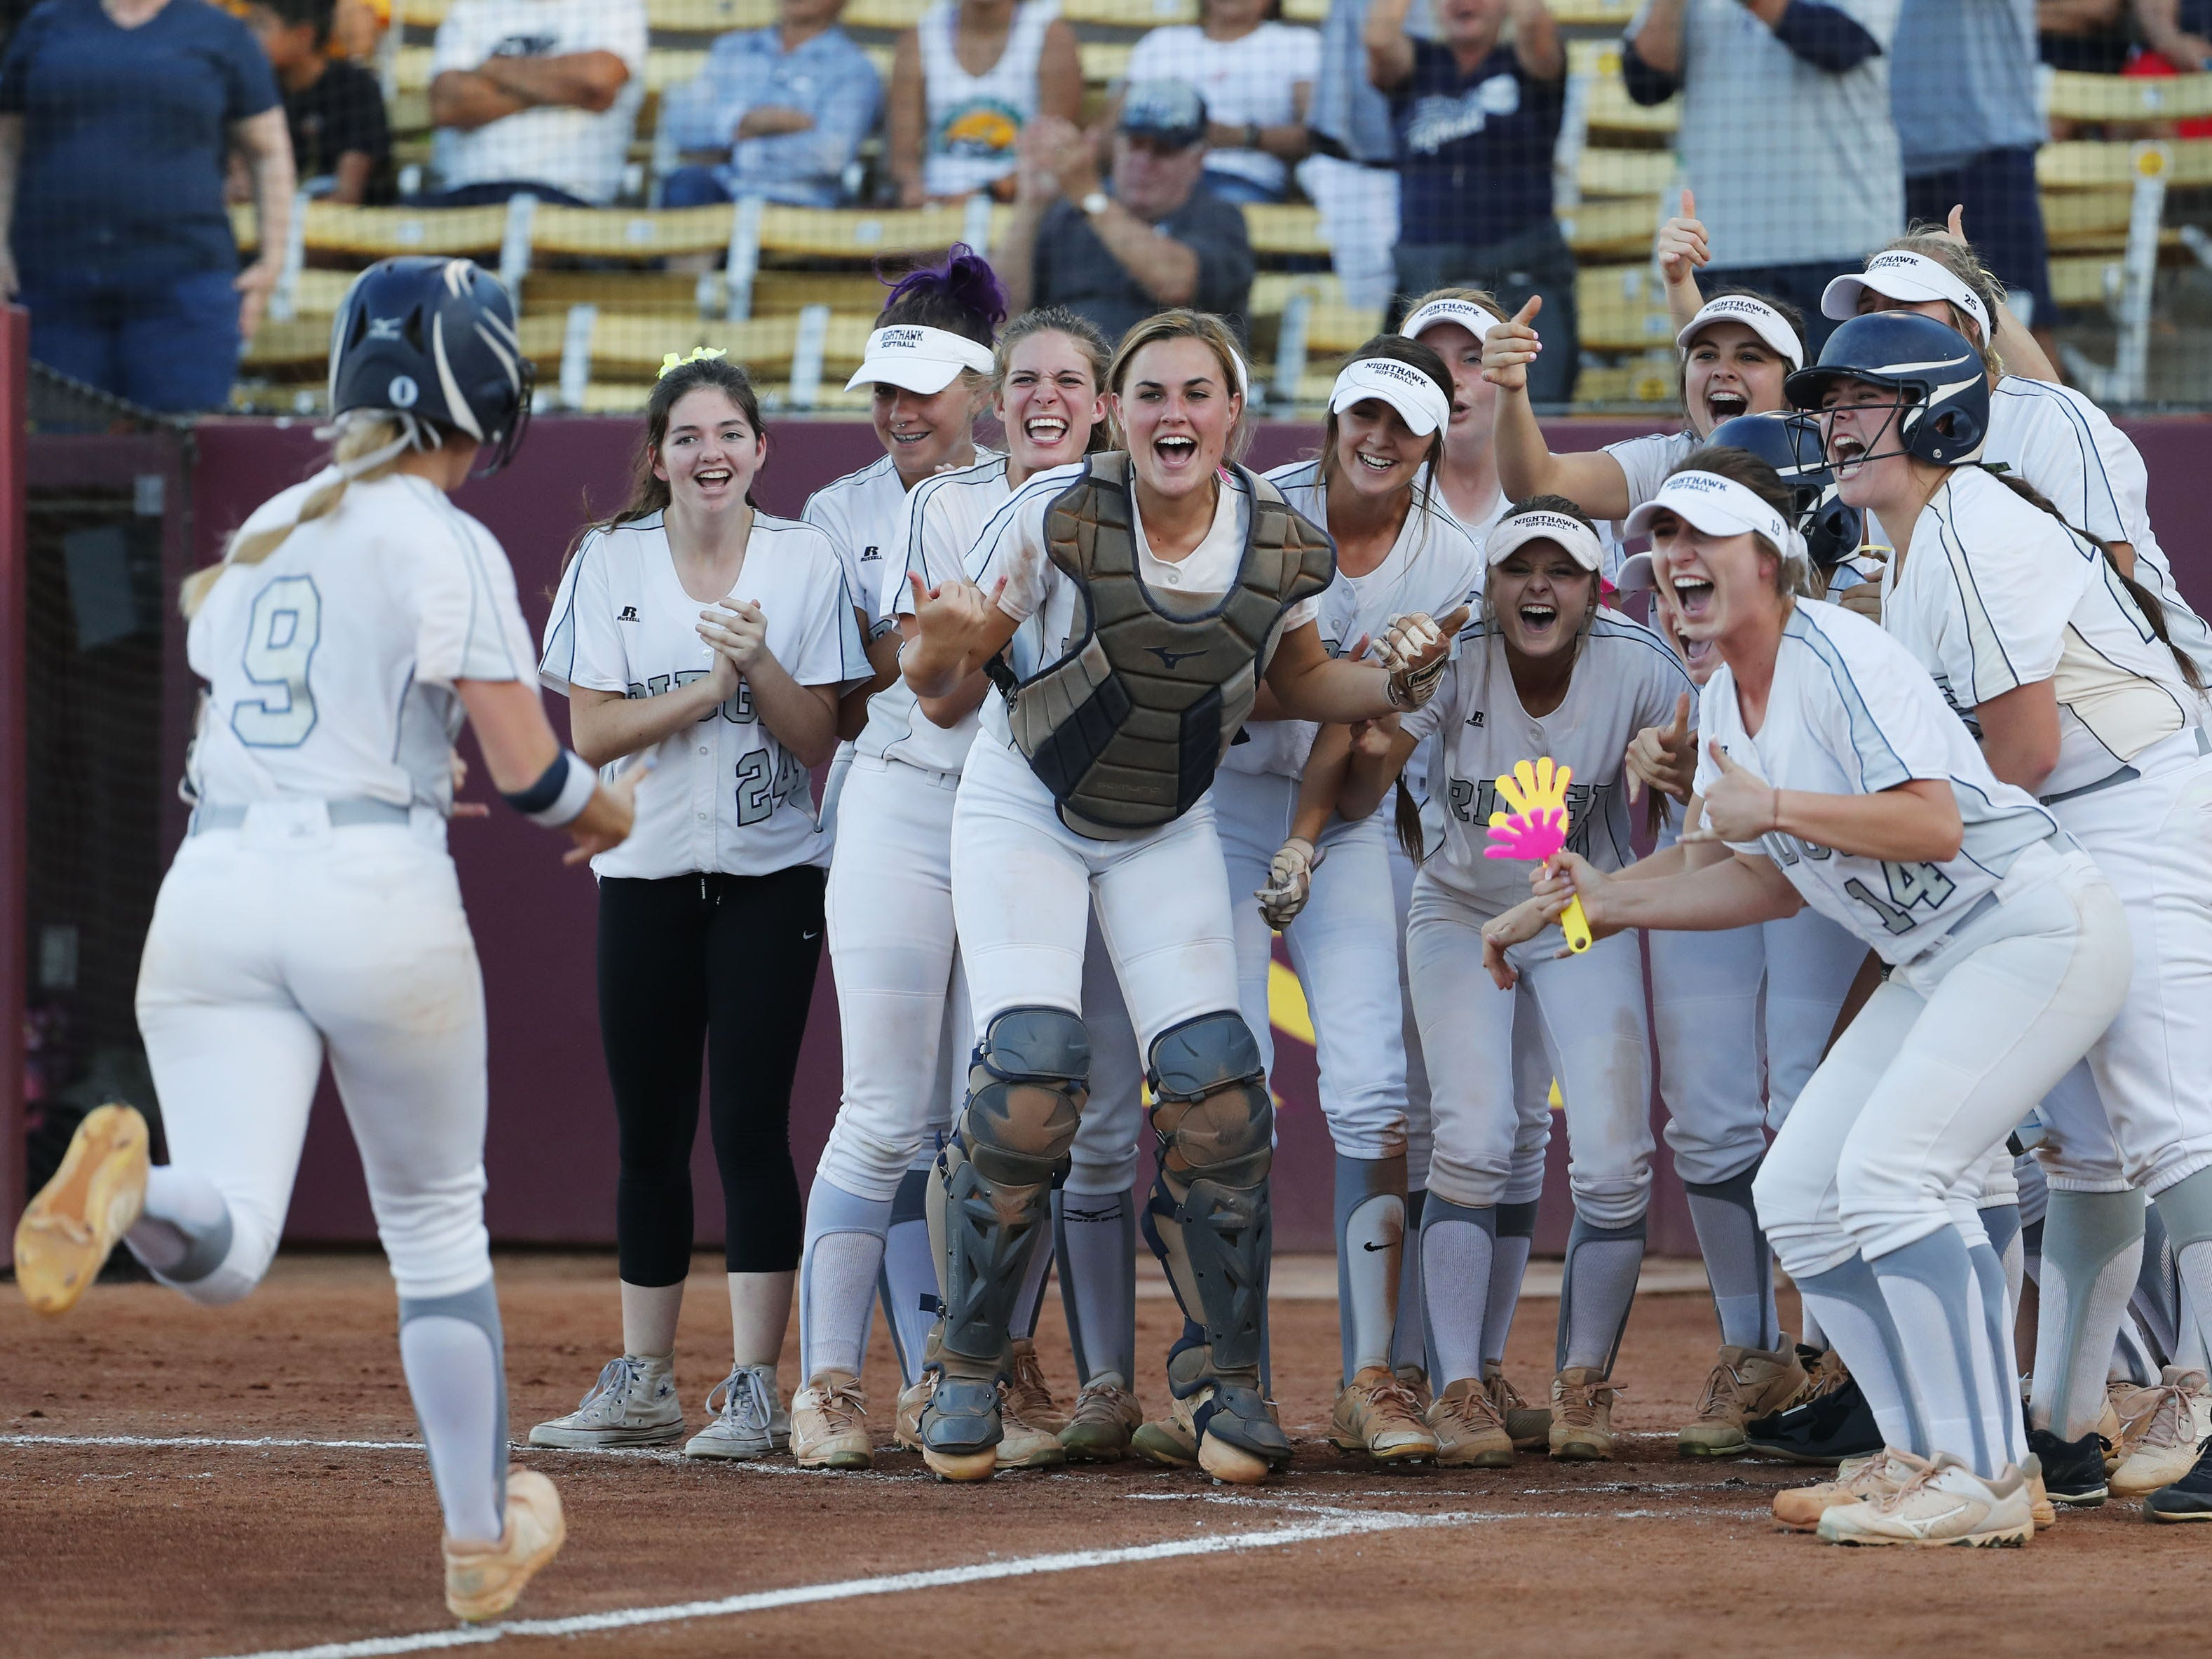 Ironwood Ridge shortstop Diana Nisbett (9) is greeted by her teammates after hitting a solo home run against Centennial during the 5A State Softball Championship in Tempe, Ariz. May 13, 2019.